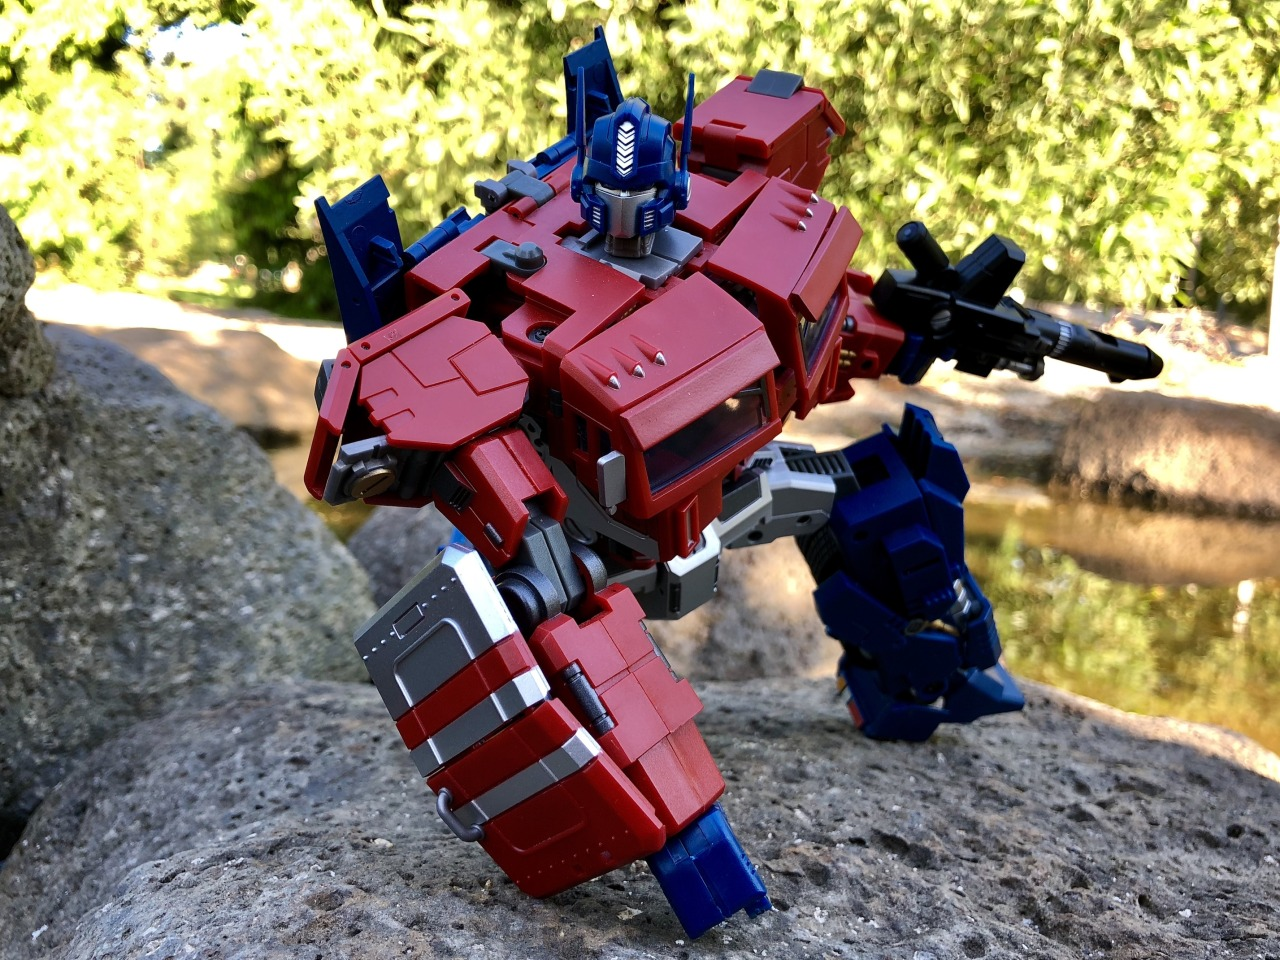 Audacious Hasbro Transformers Optimus Prime Idw Action Figure Flame Other Action Figures Action Figures